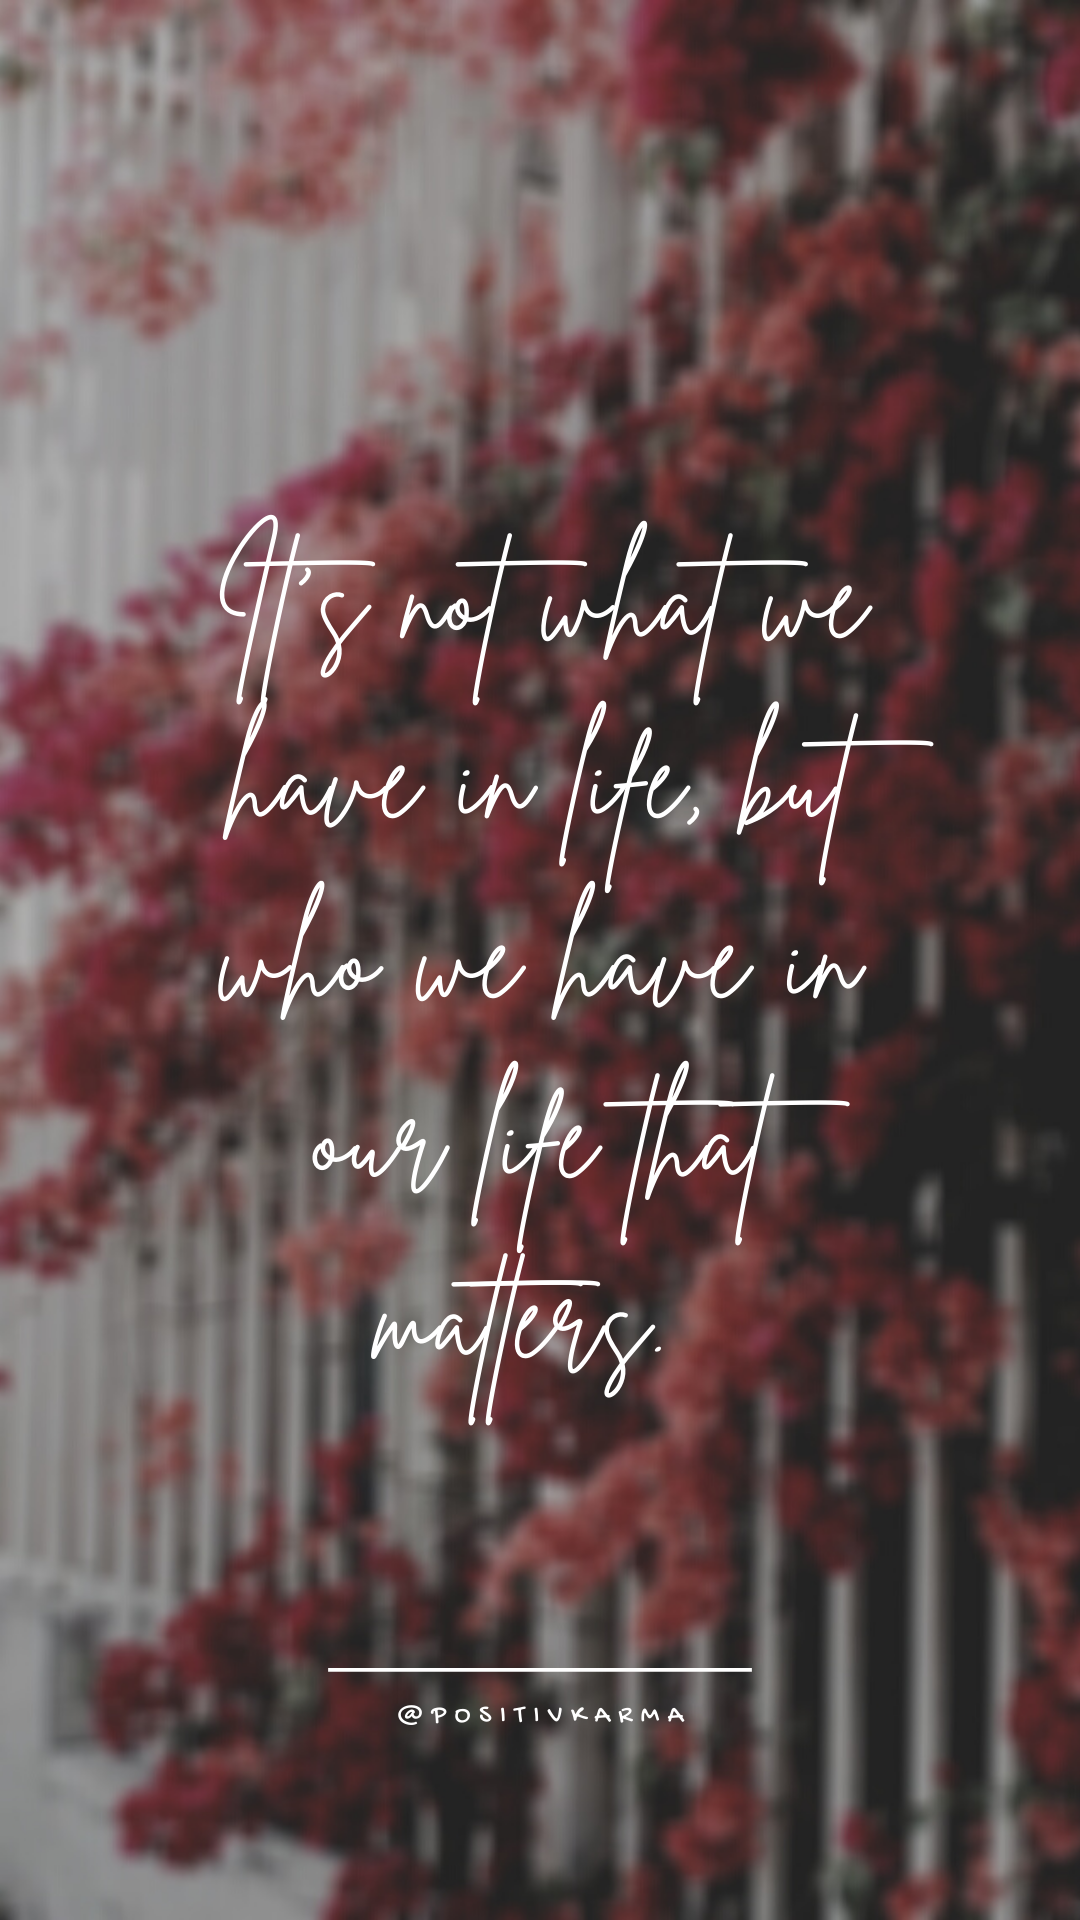 You are currently viewing It's not what we have in life, but who we have in our life that matters – by positivkarma